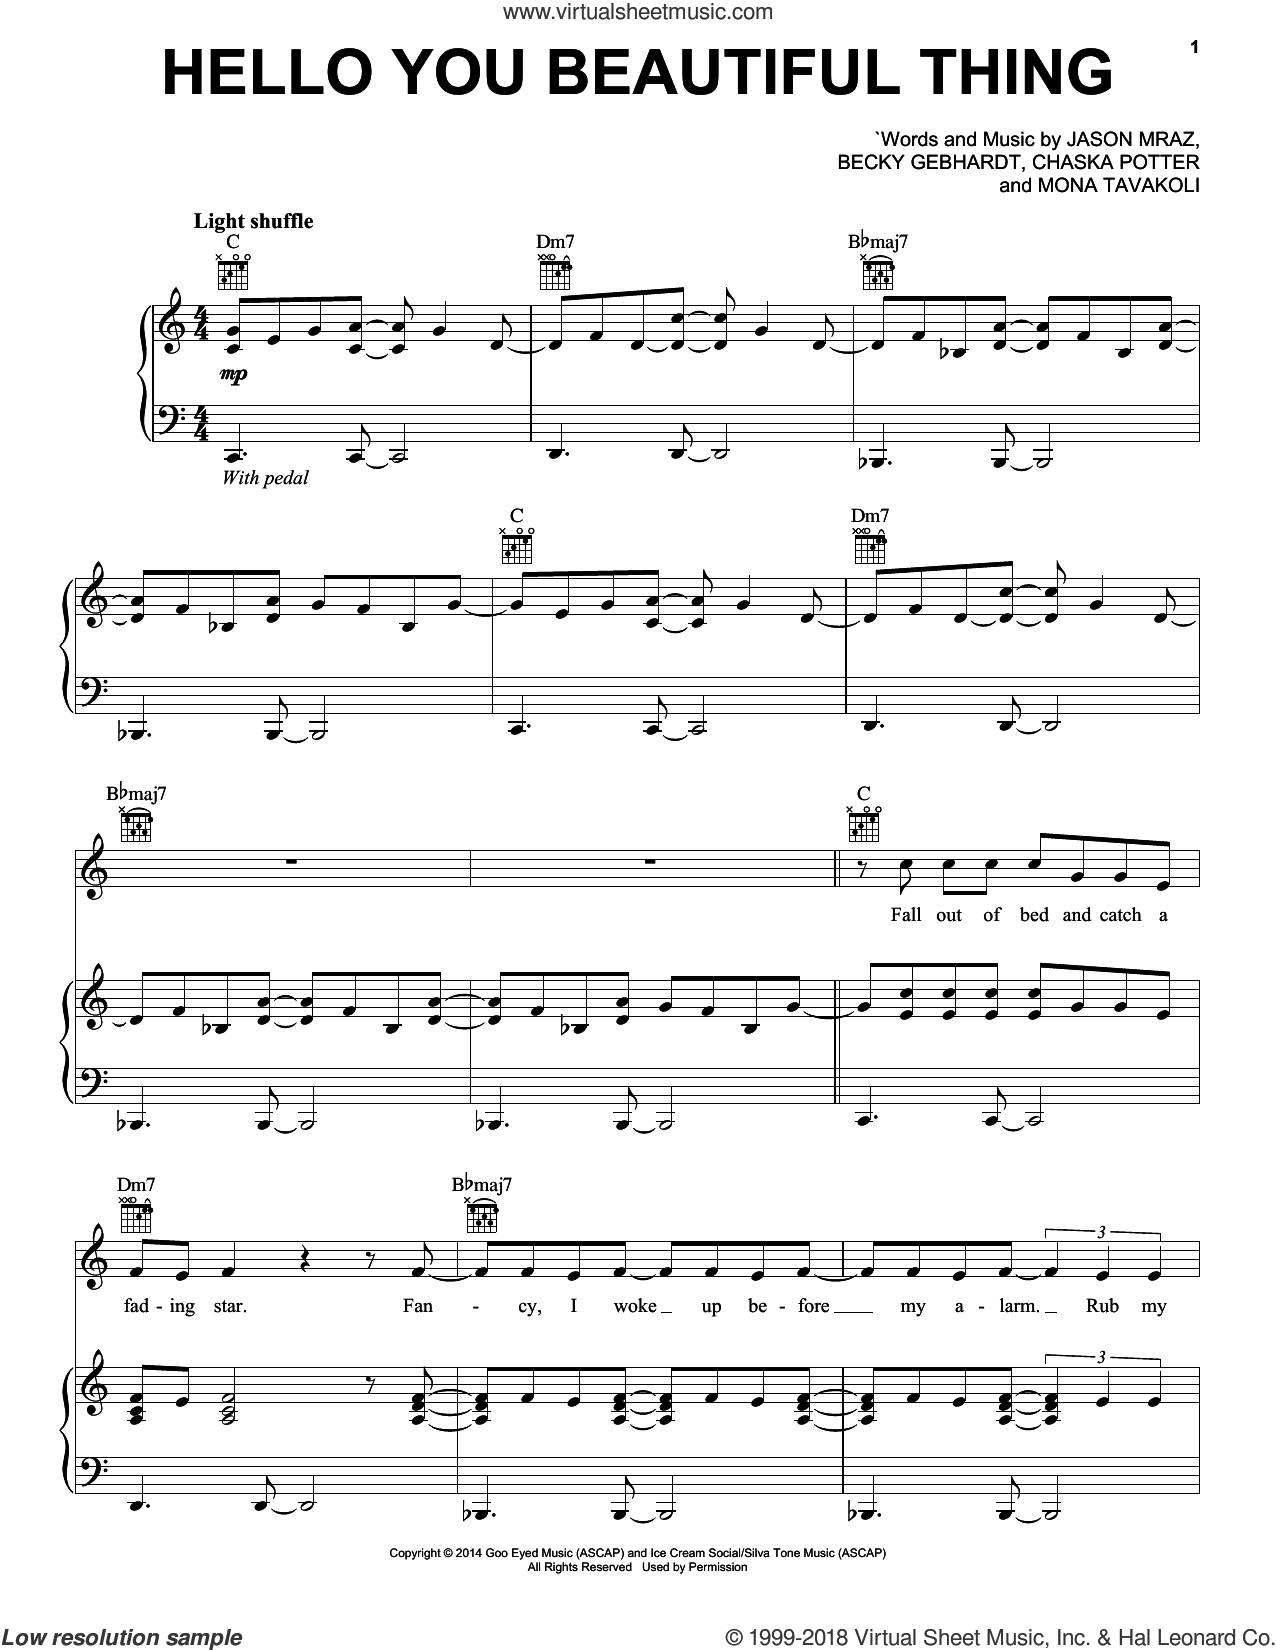 Hello You Beautiful Thing sheet music for voice, piano or guitar by Jason Mraz, Becky Gebhardt, Chaska Potter and Mona Tavakoli, intermediate skill level